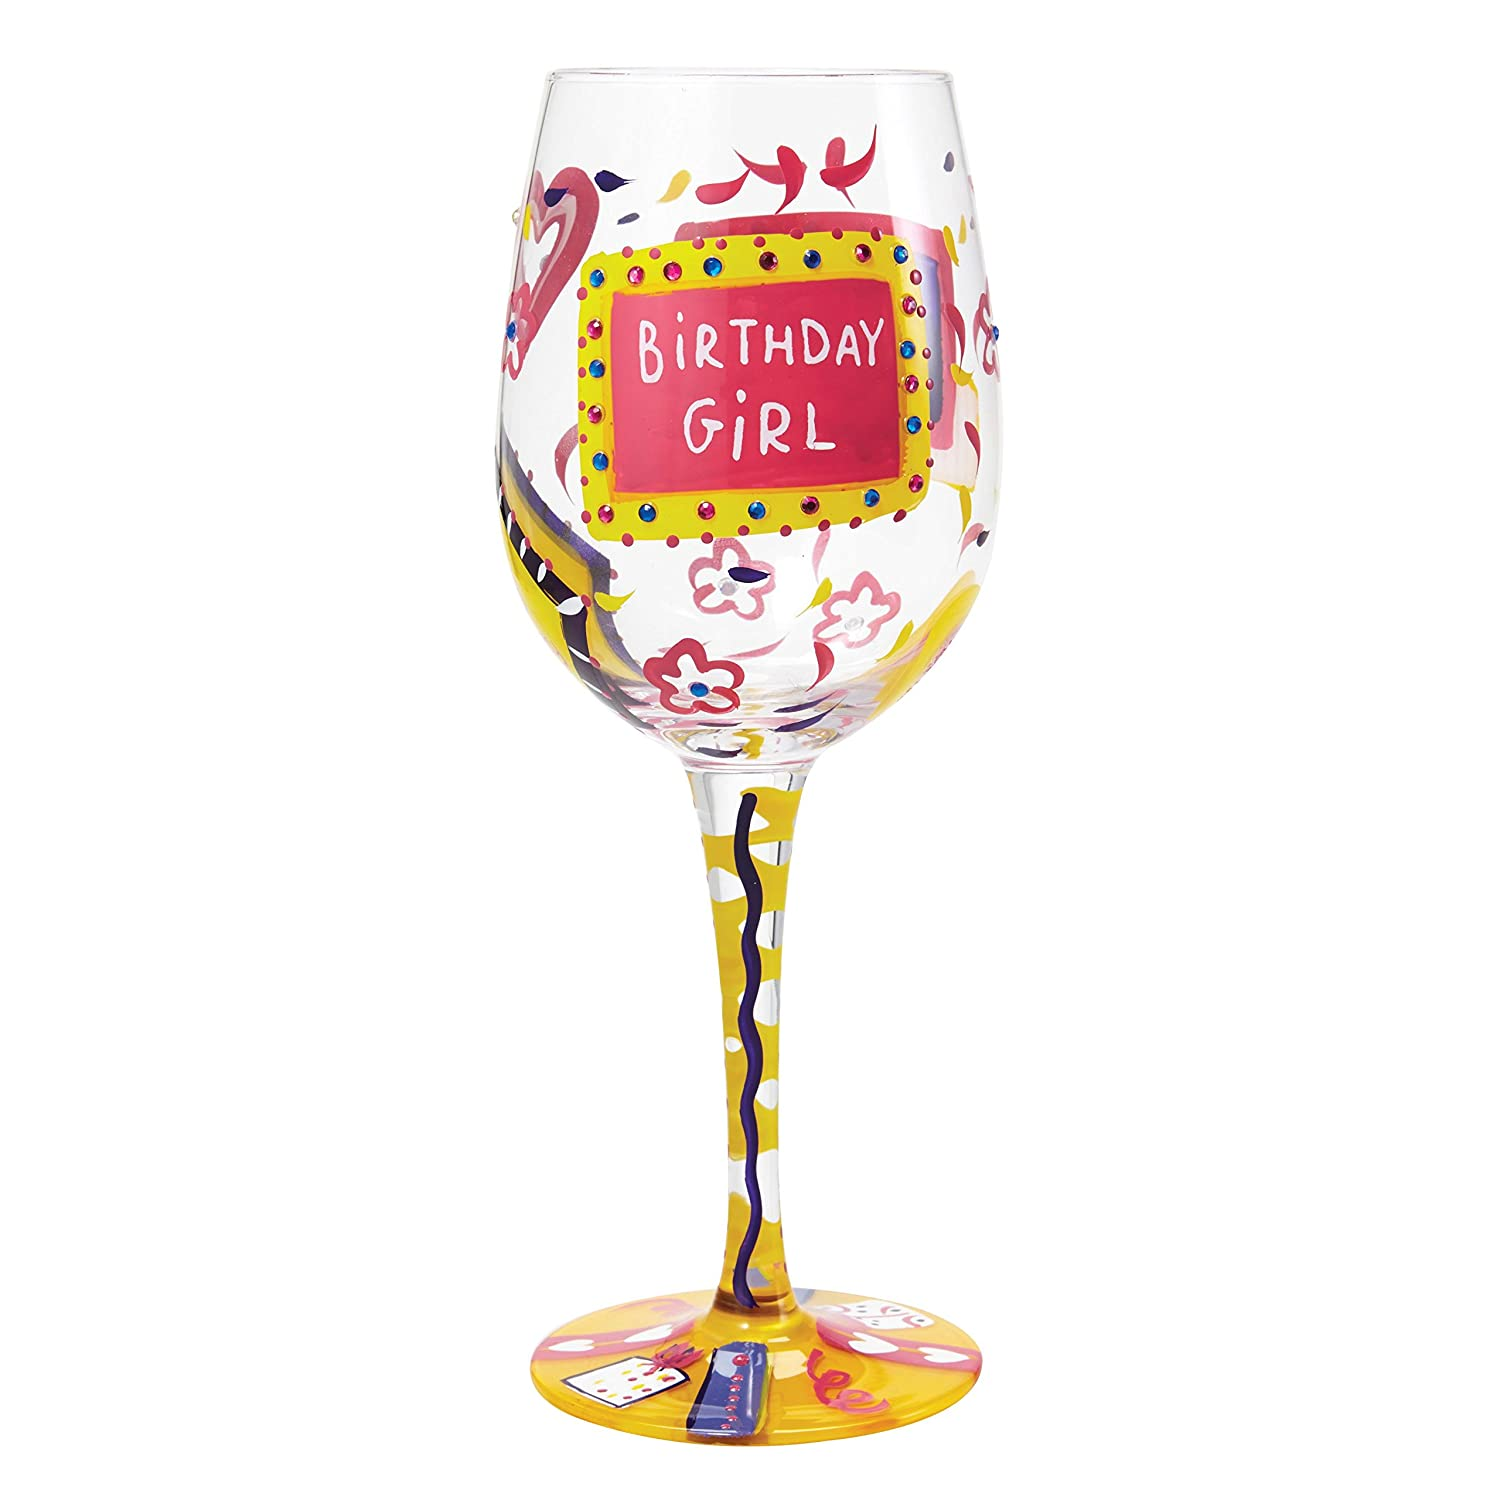 Enesco Presents Lolita Super Bling Collection Wine Glass, Birthday Girl Santa Barbara Design Studio GLS20-5524G